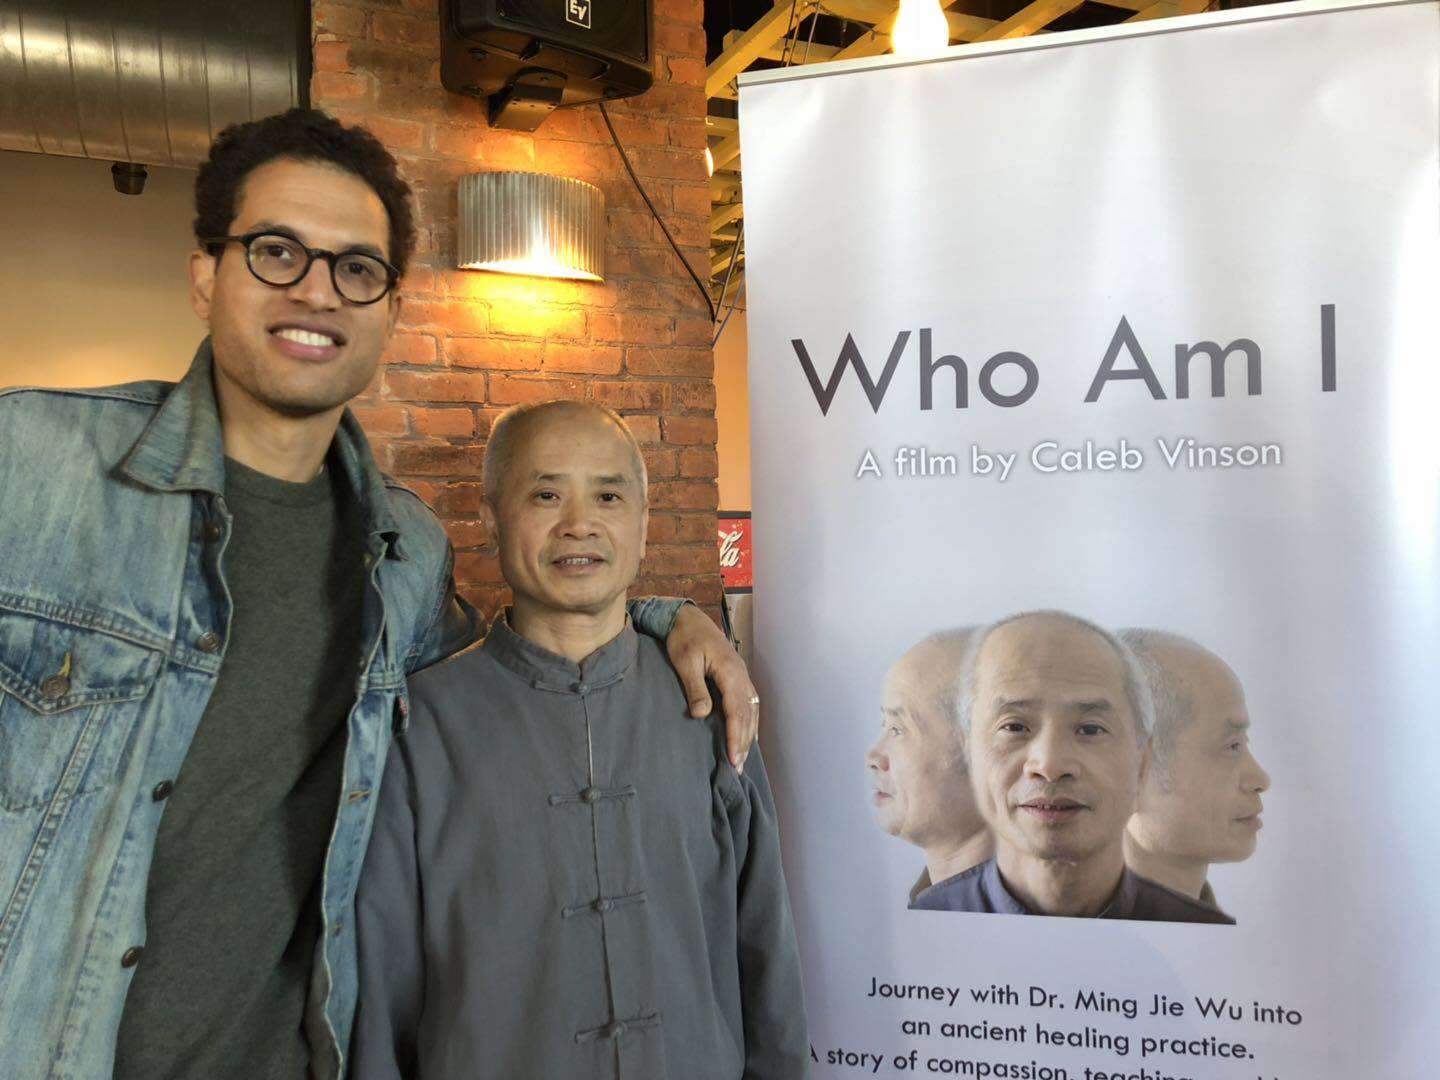 Dr. Ming Wu and Director Kaleb Vinson